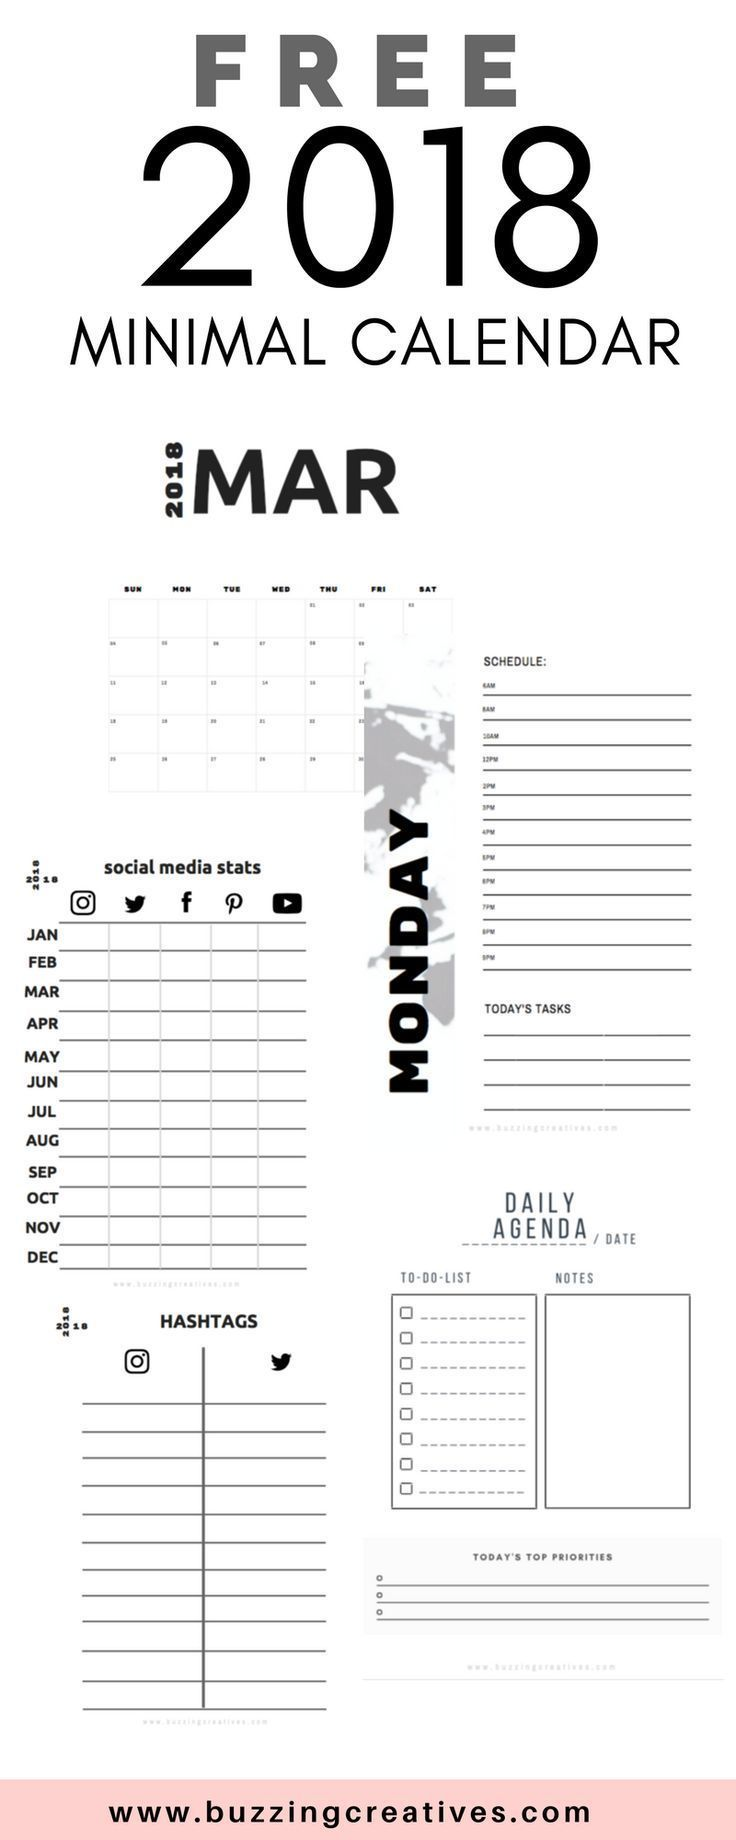 free 2018 calendar planner - organize your blog, keep track of your social media stats, monthly calendar and daily planner . All are fillable pdfs! #planner #2018planner #freeplanner #freeprintable #freecalendar #newblogger #bloggingtips